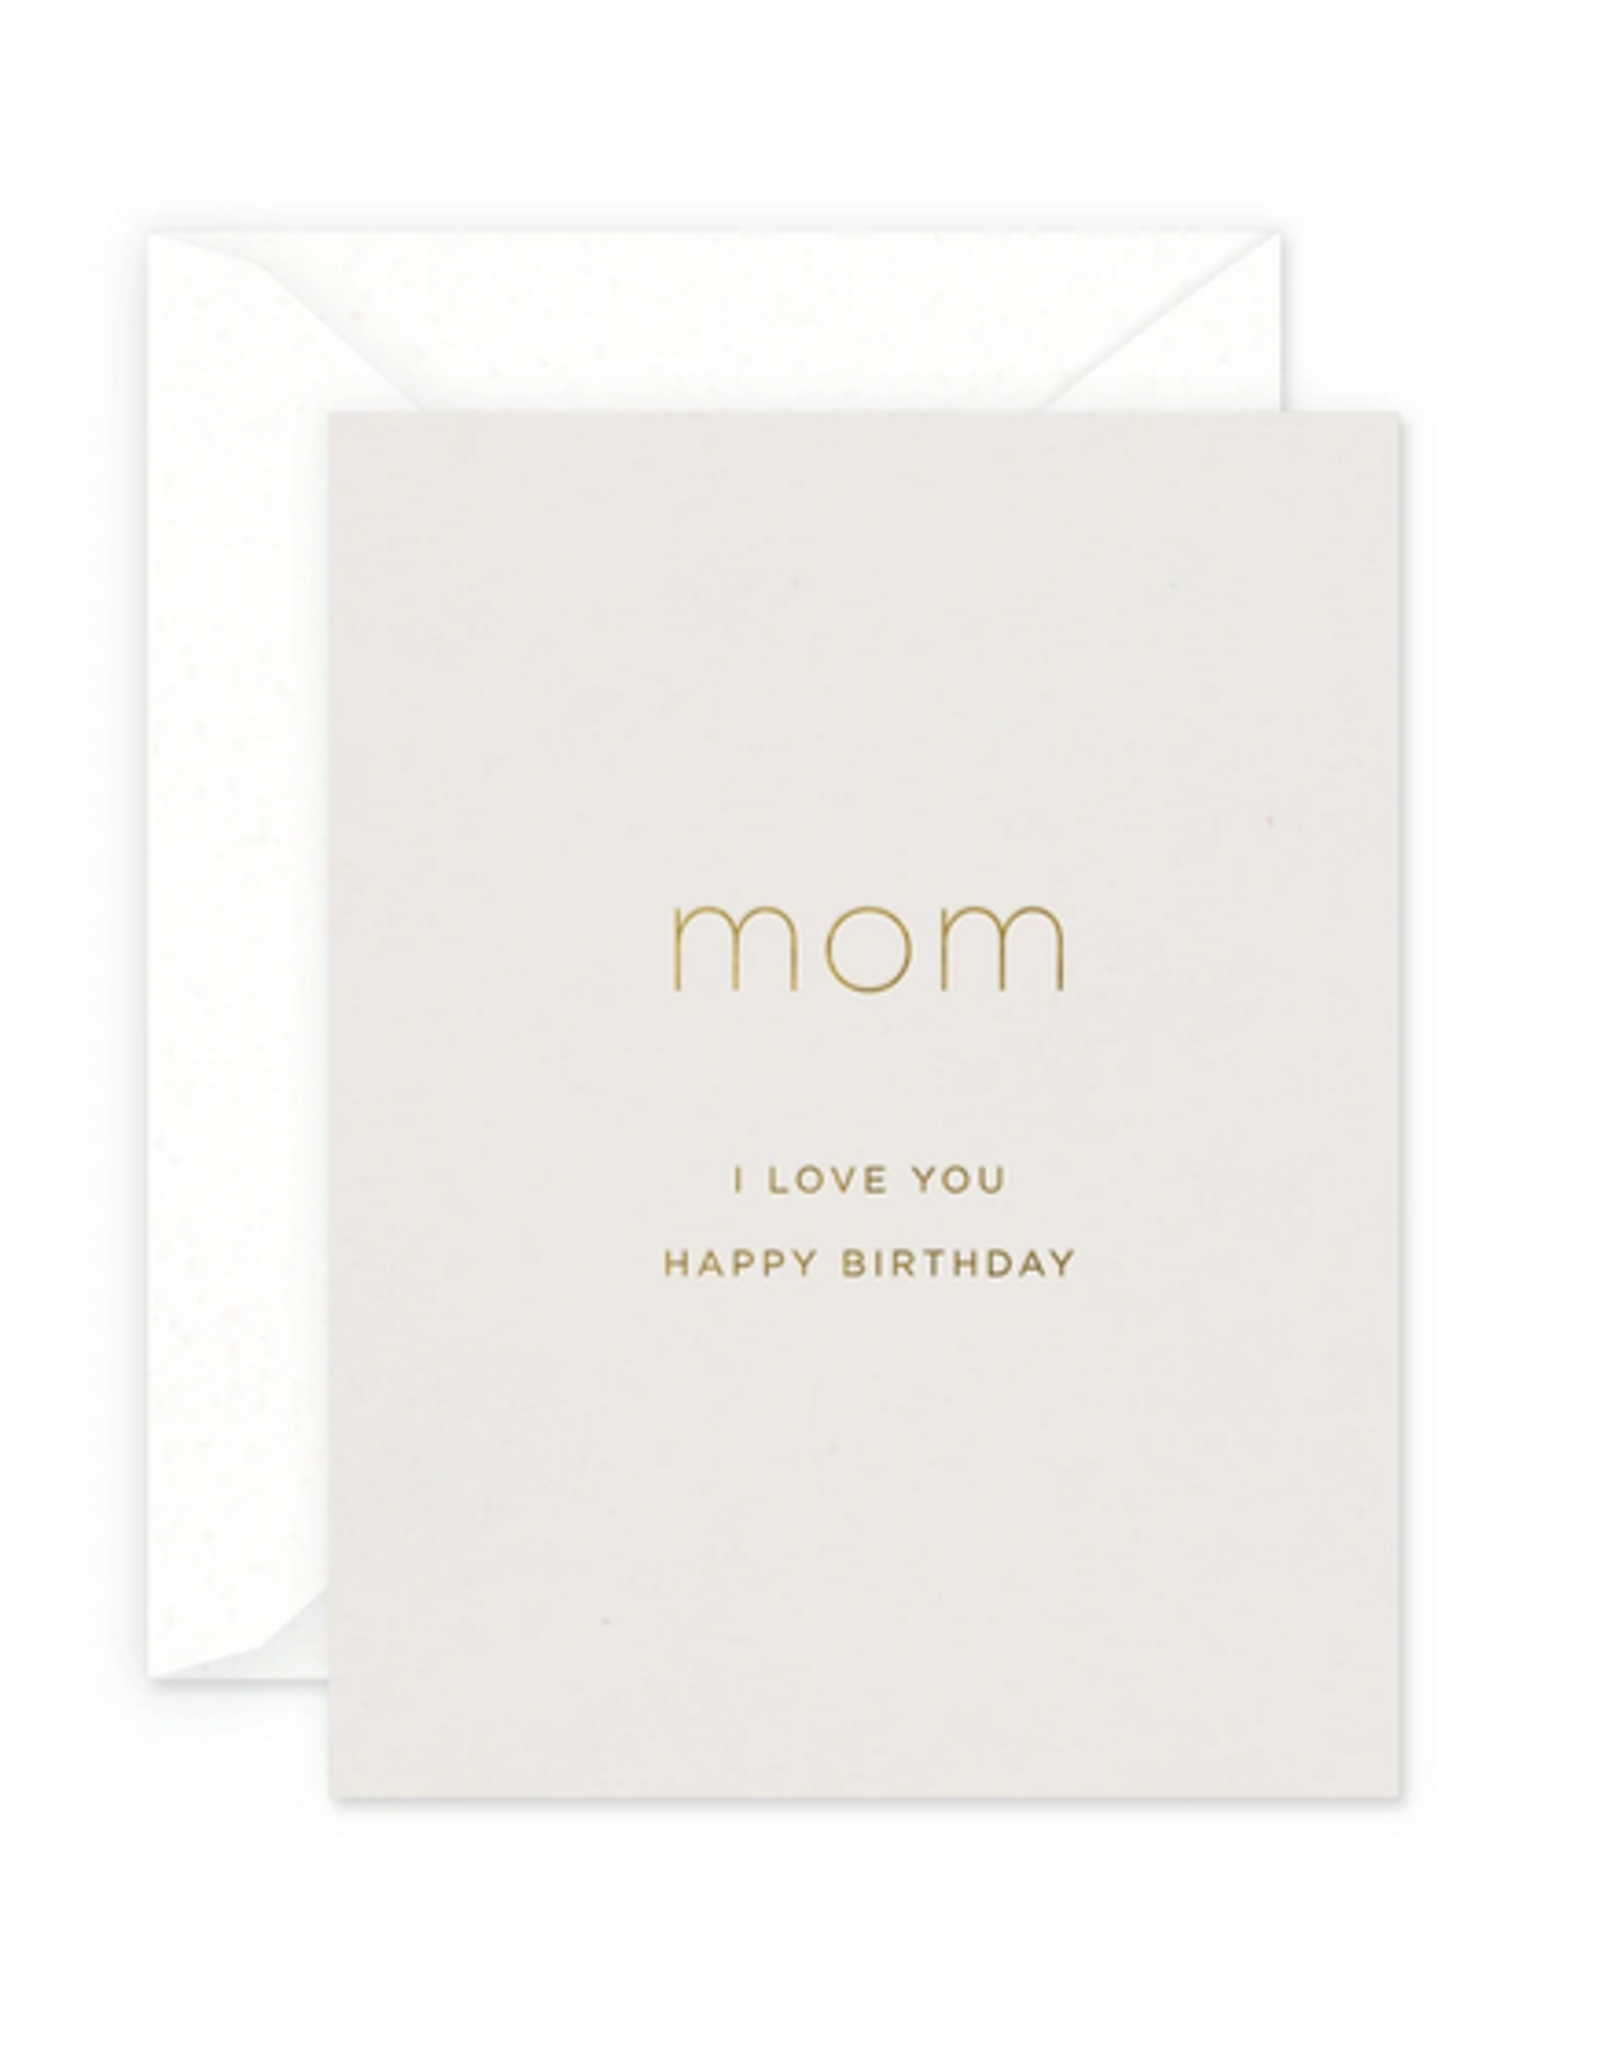 Smitten on Paper Mom Birthday Greeting Card